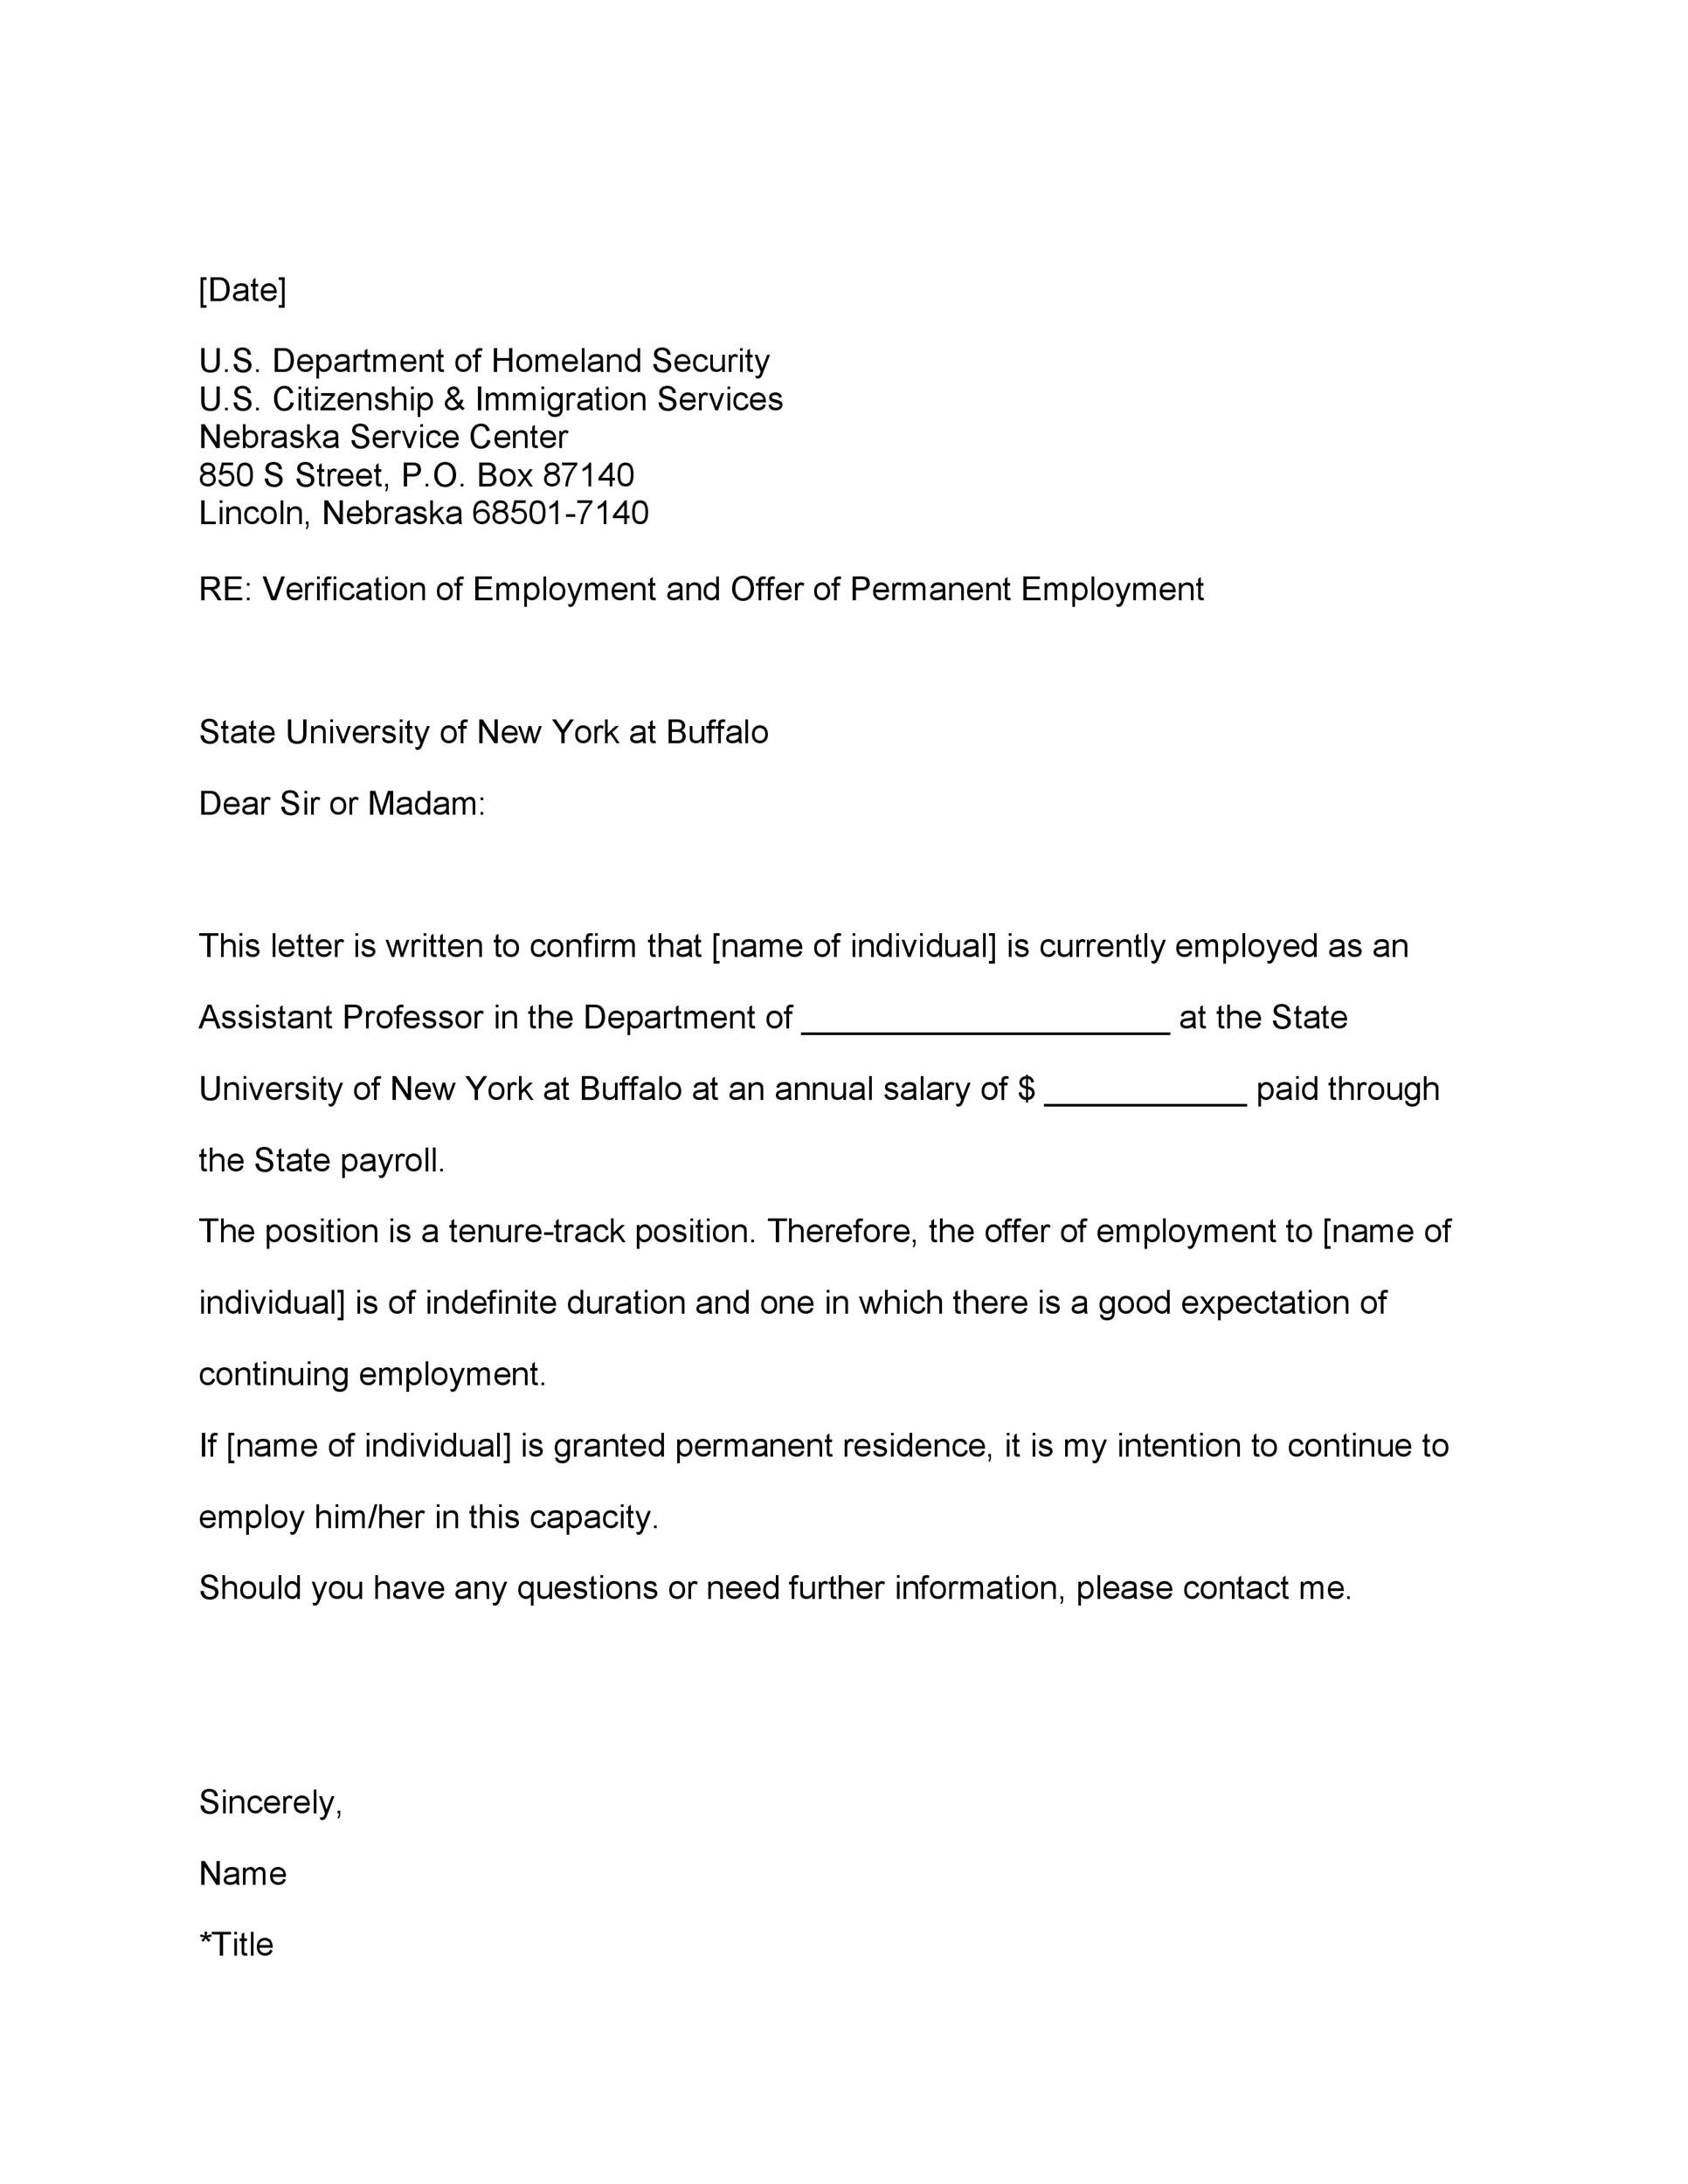 Confirmation Letter For Employee After Probation Period Image